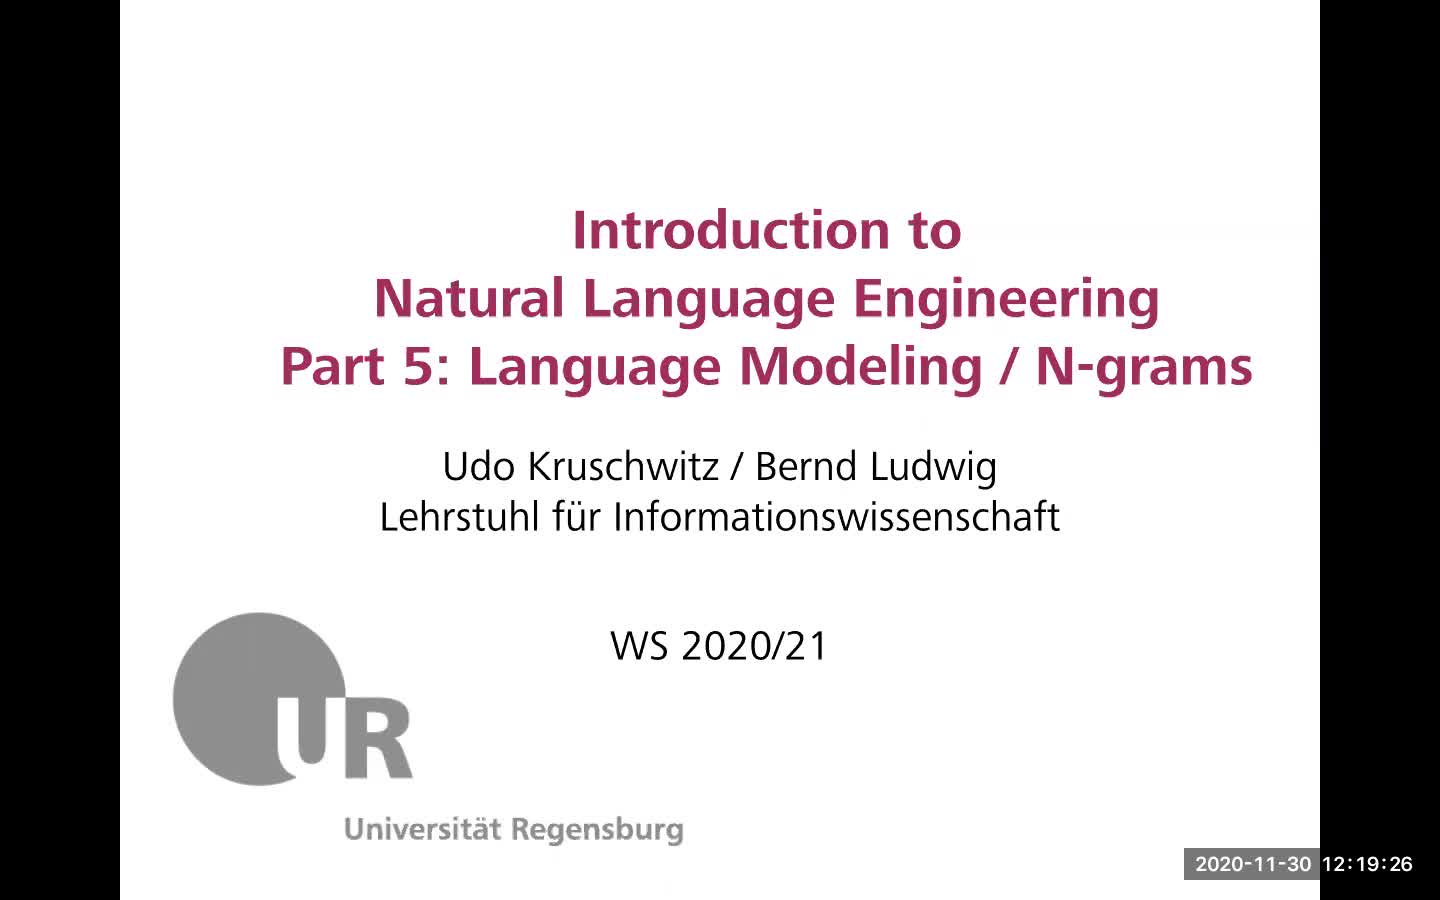 Introduction to Natural Language Engineering 1 / Informationslinguistik 1 - Lecture 5 (Language modeling, n-grams / Statistische Sprachmodelle, N-grams)